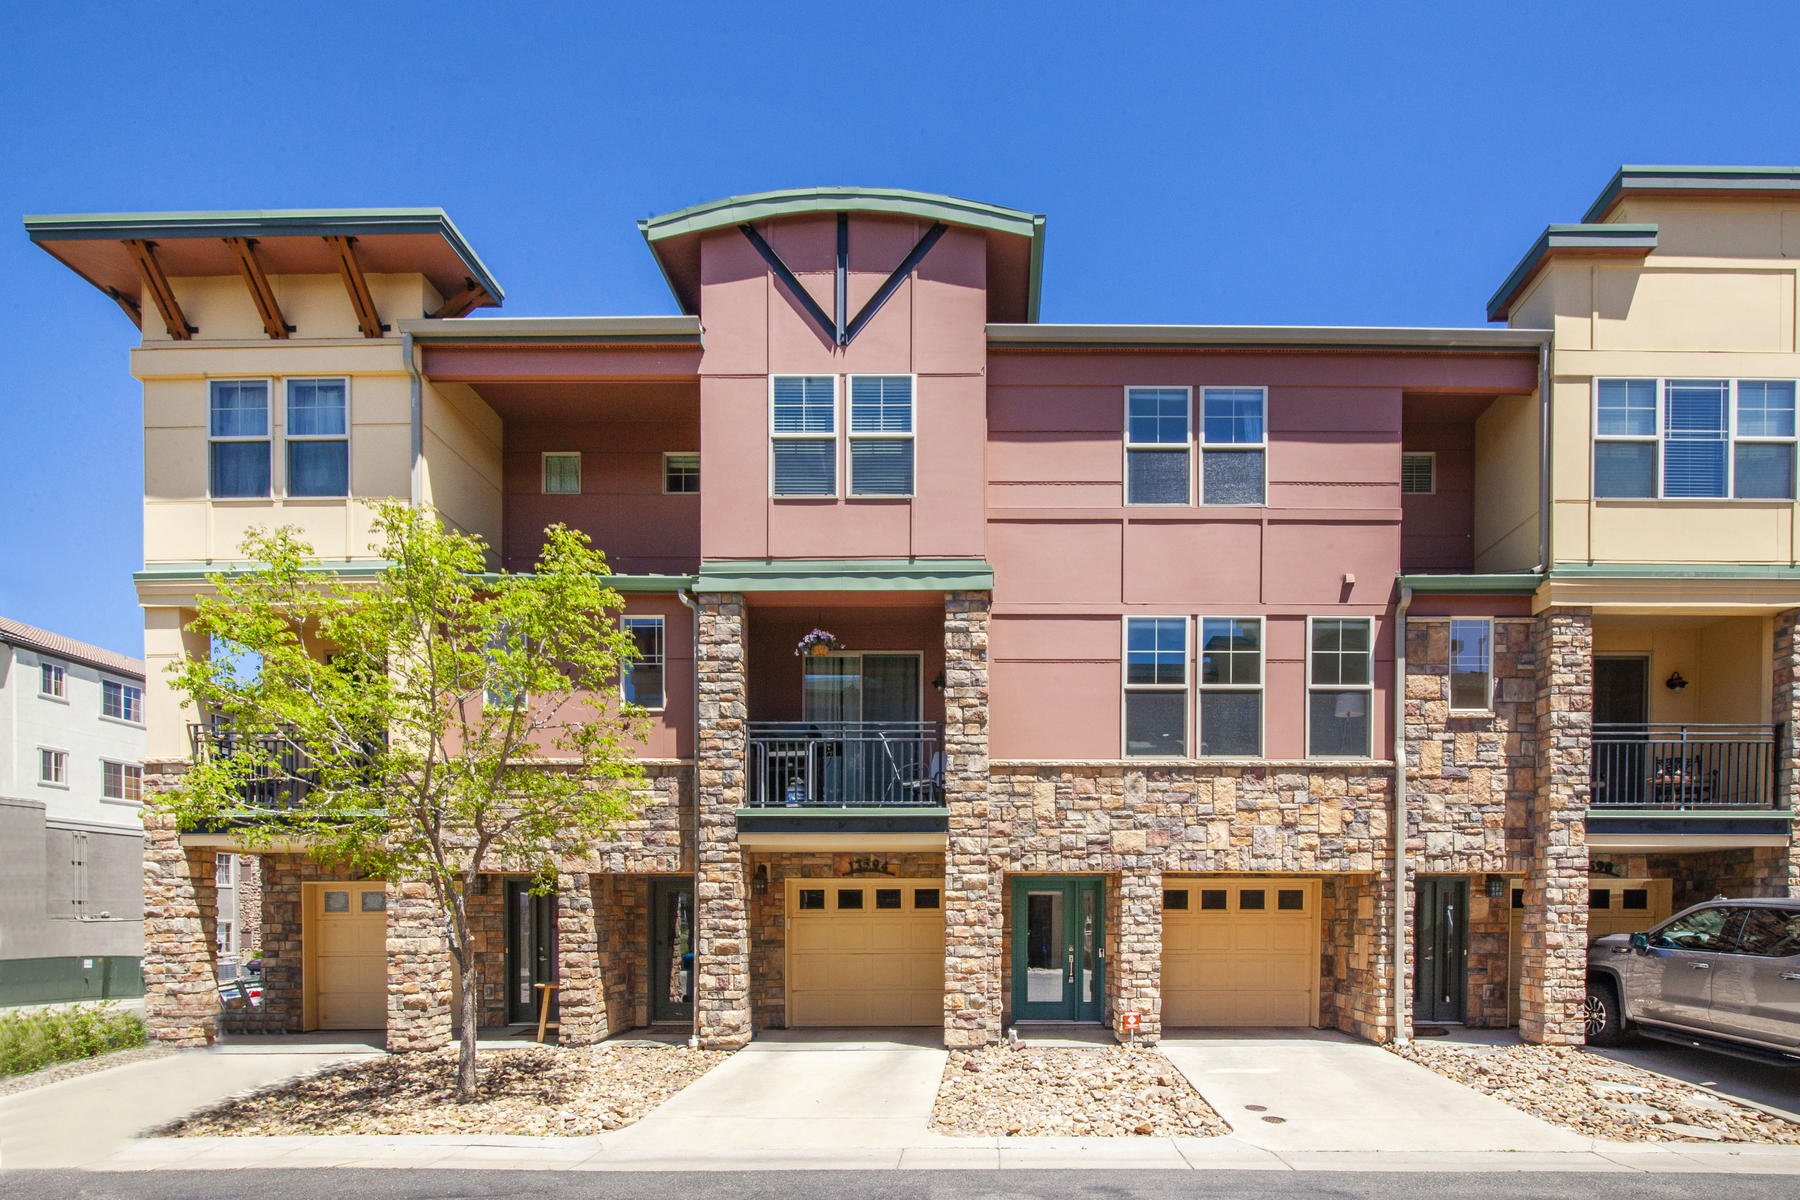 townhouses for Sale at Beautifully updated rowhome in Vantage Pointe. 13592 Via Varra Broomfield, Colorado 80020 United States